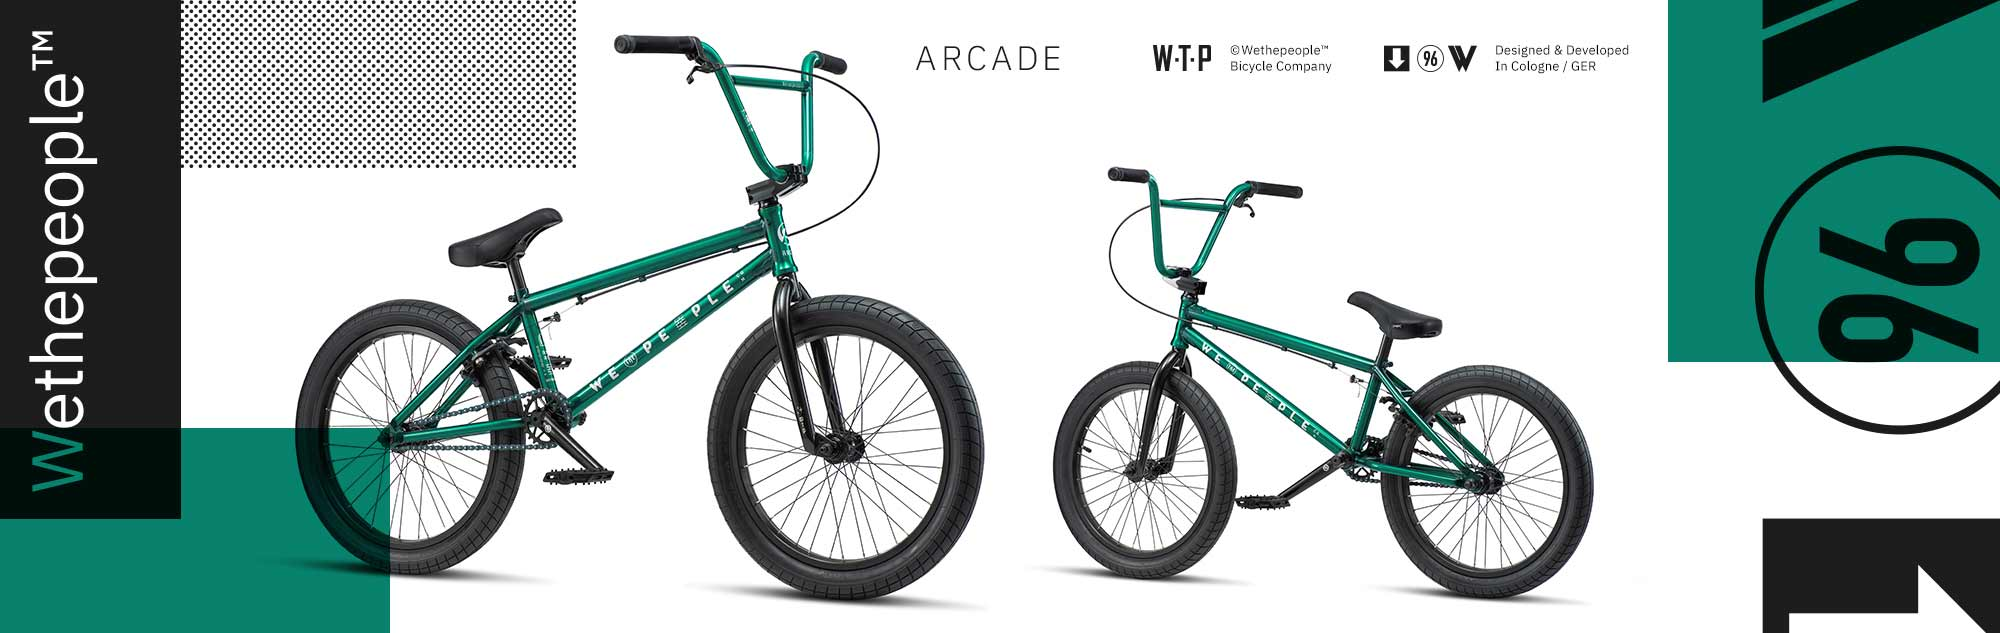 WeThePeople Arcade Bike for sale at Albe's BMX